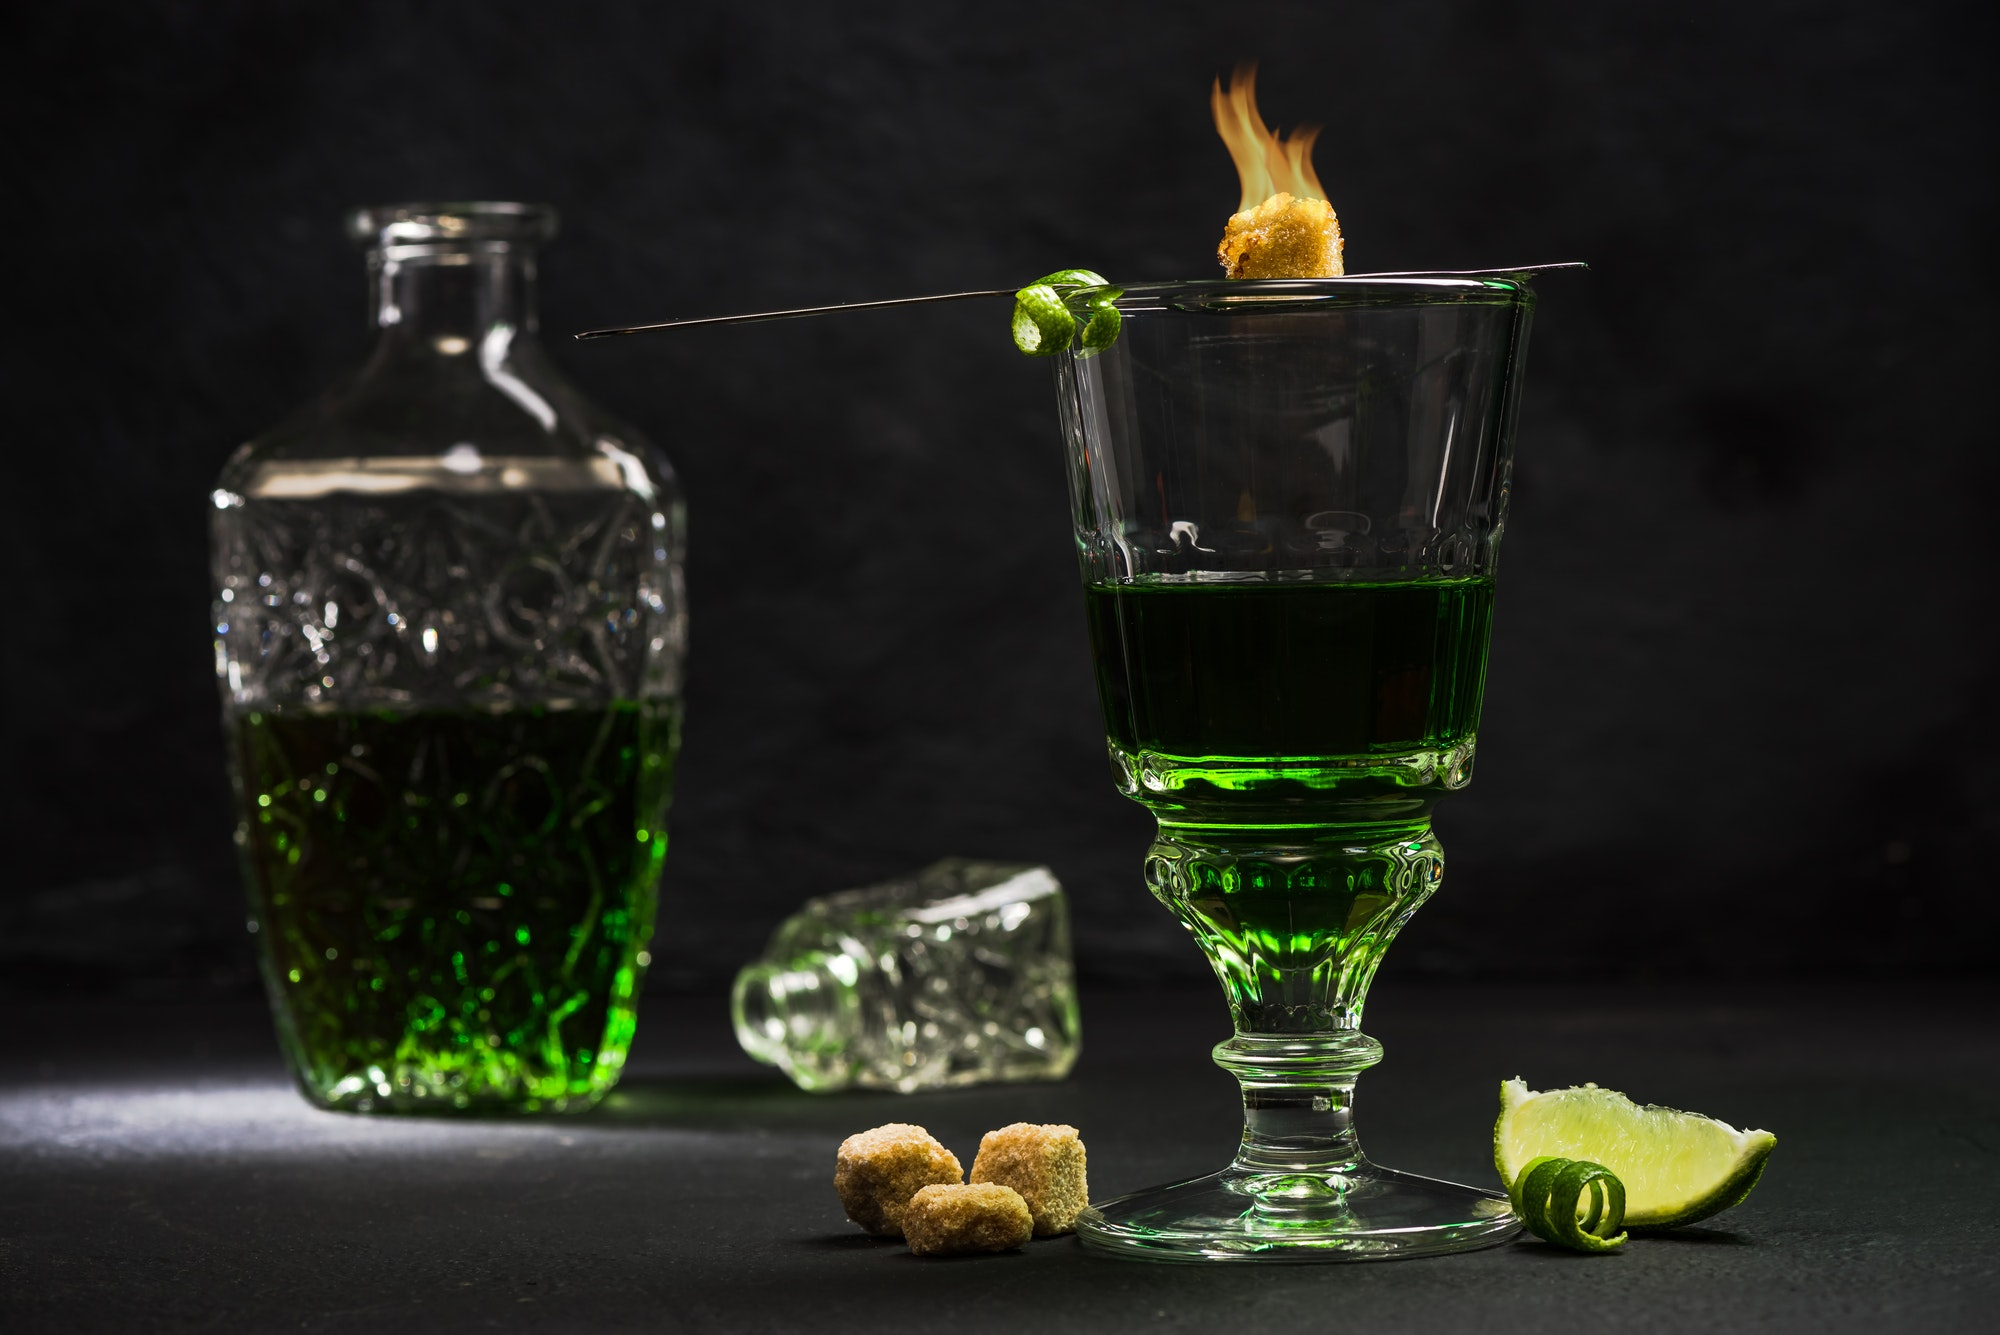 Traditional set for drinking Absinthe